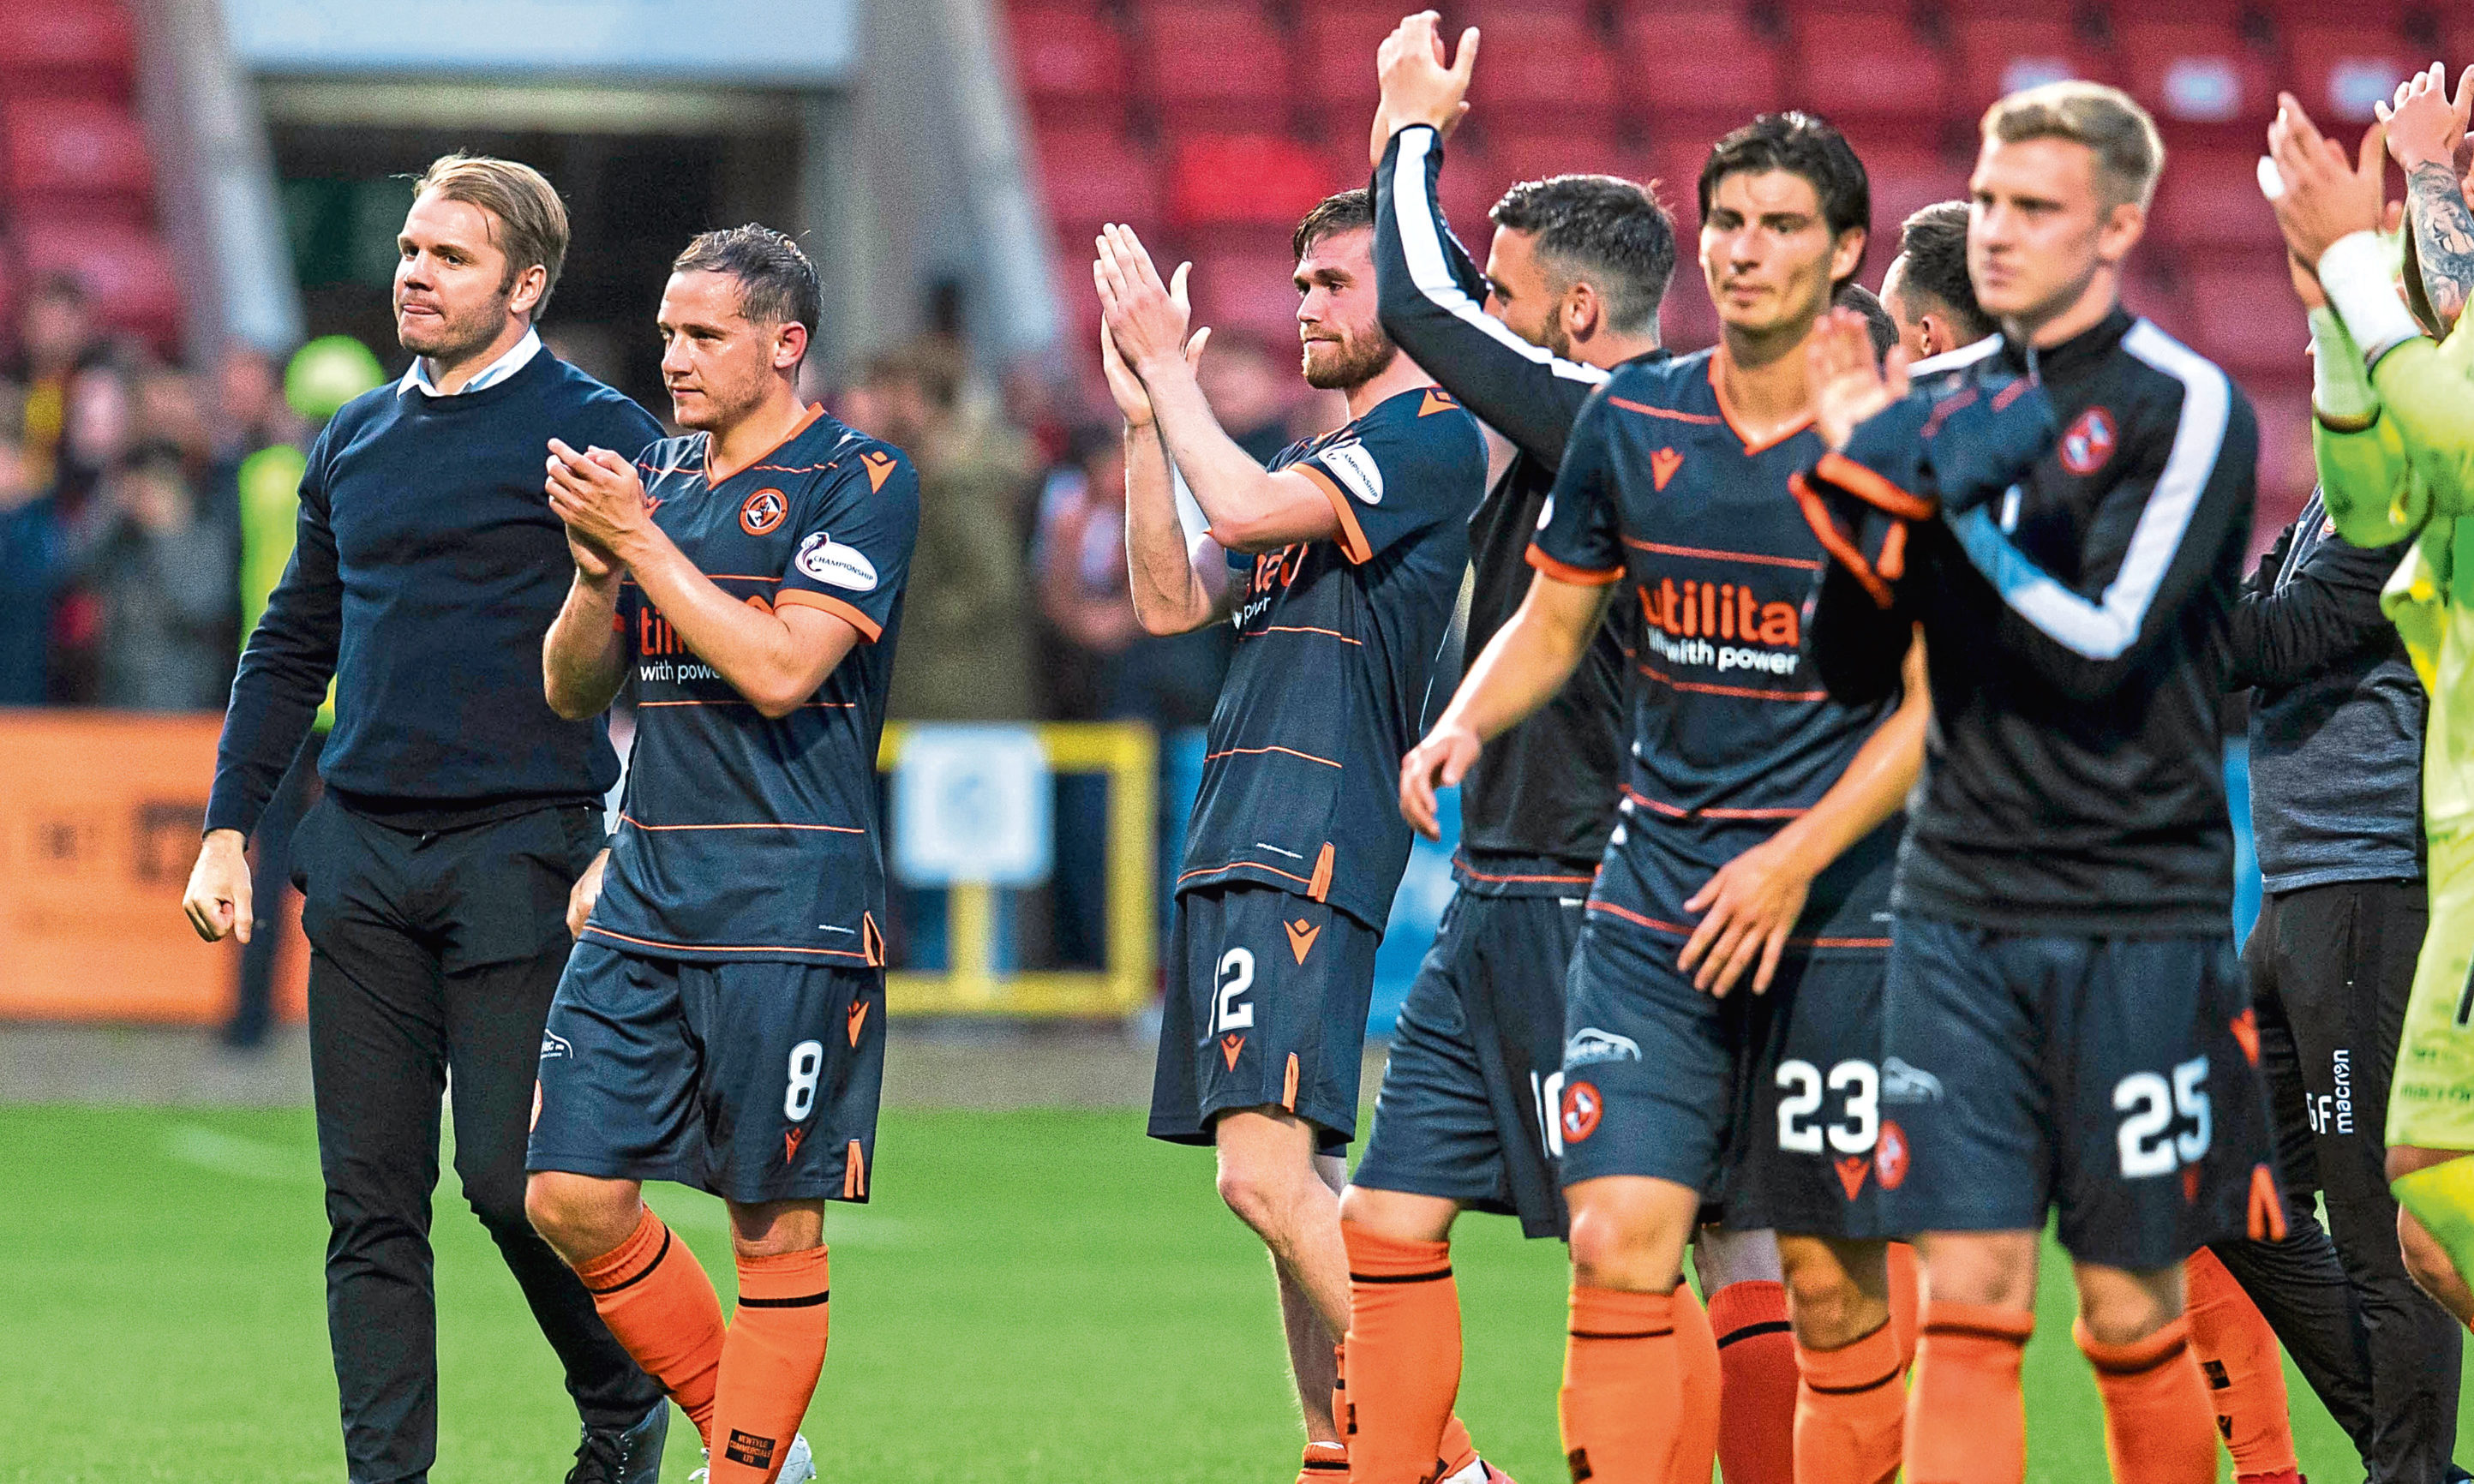 The Dundee United players celebrate with their supporters at full-time.